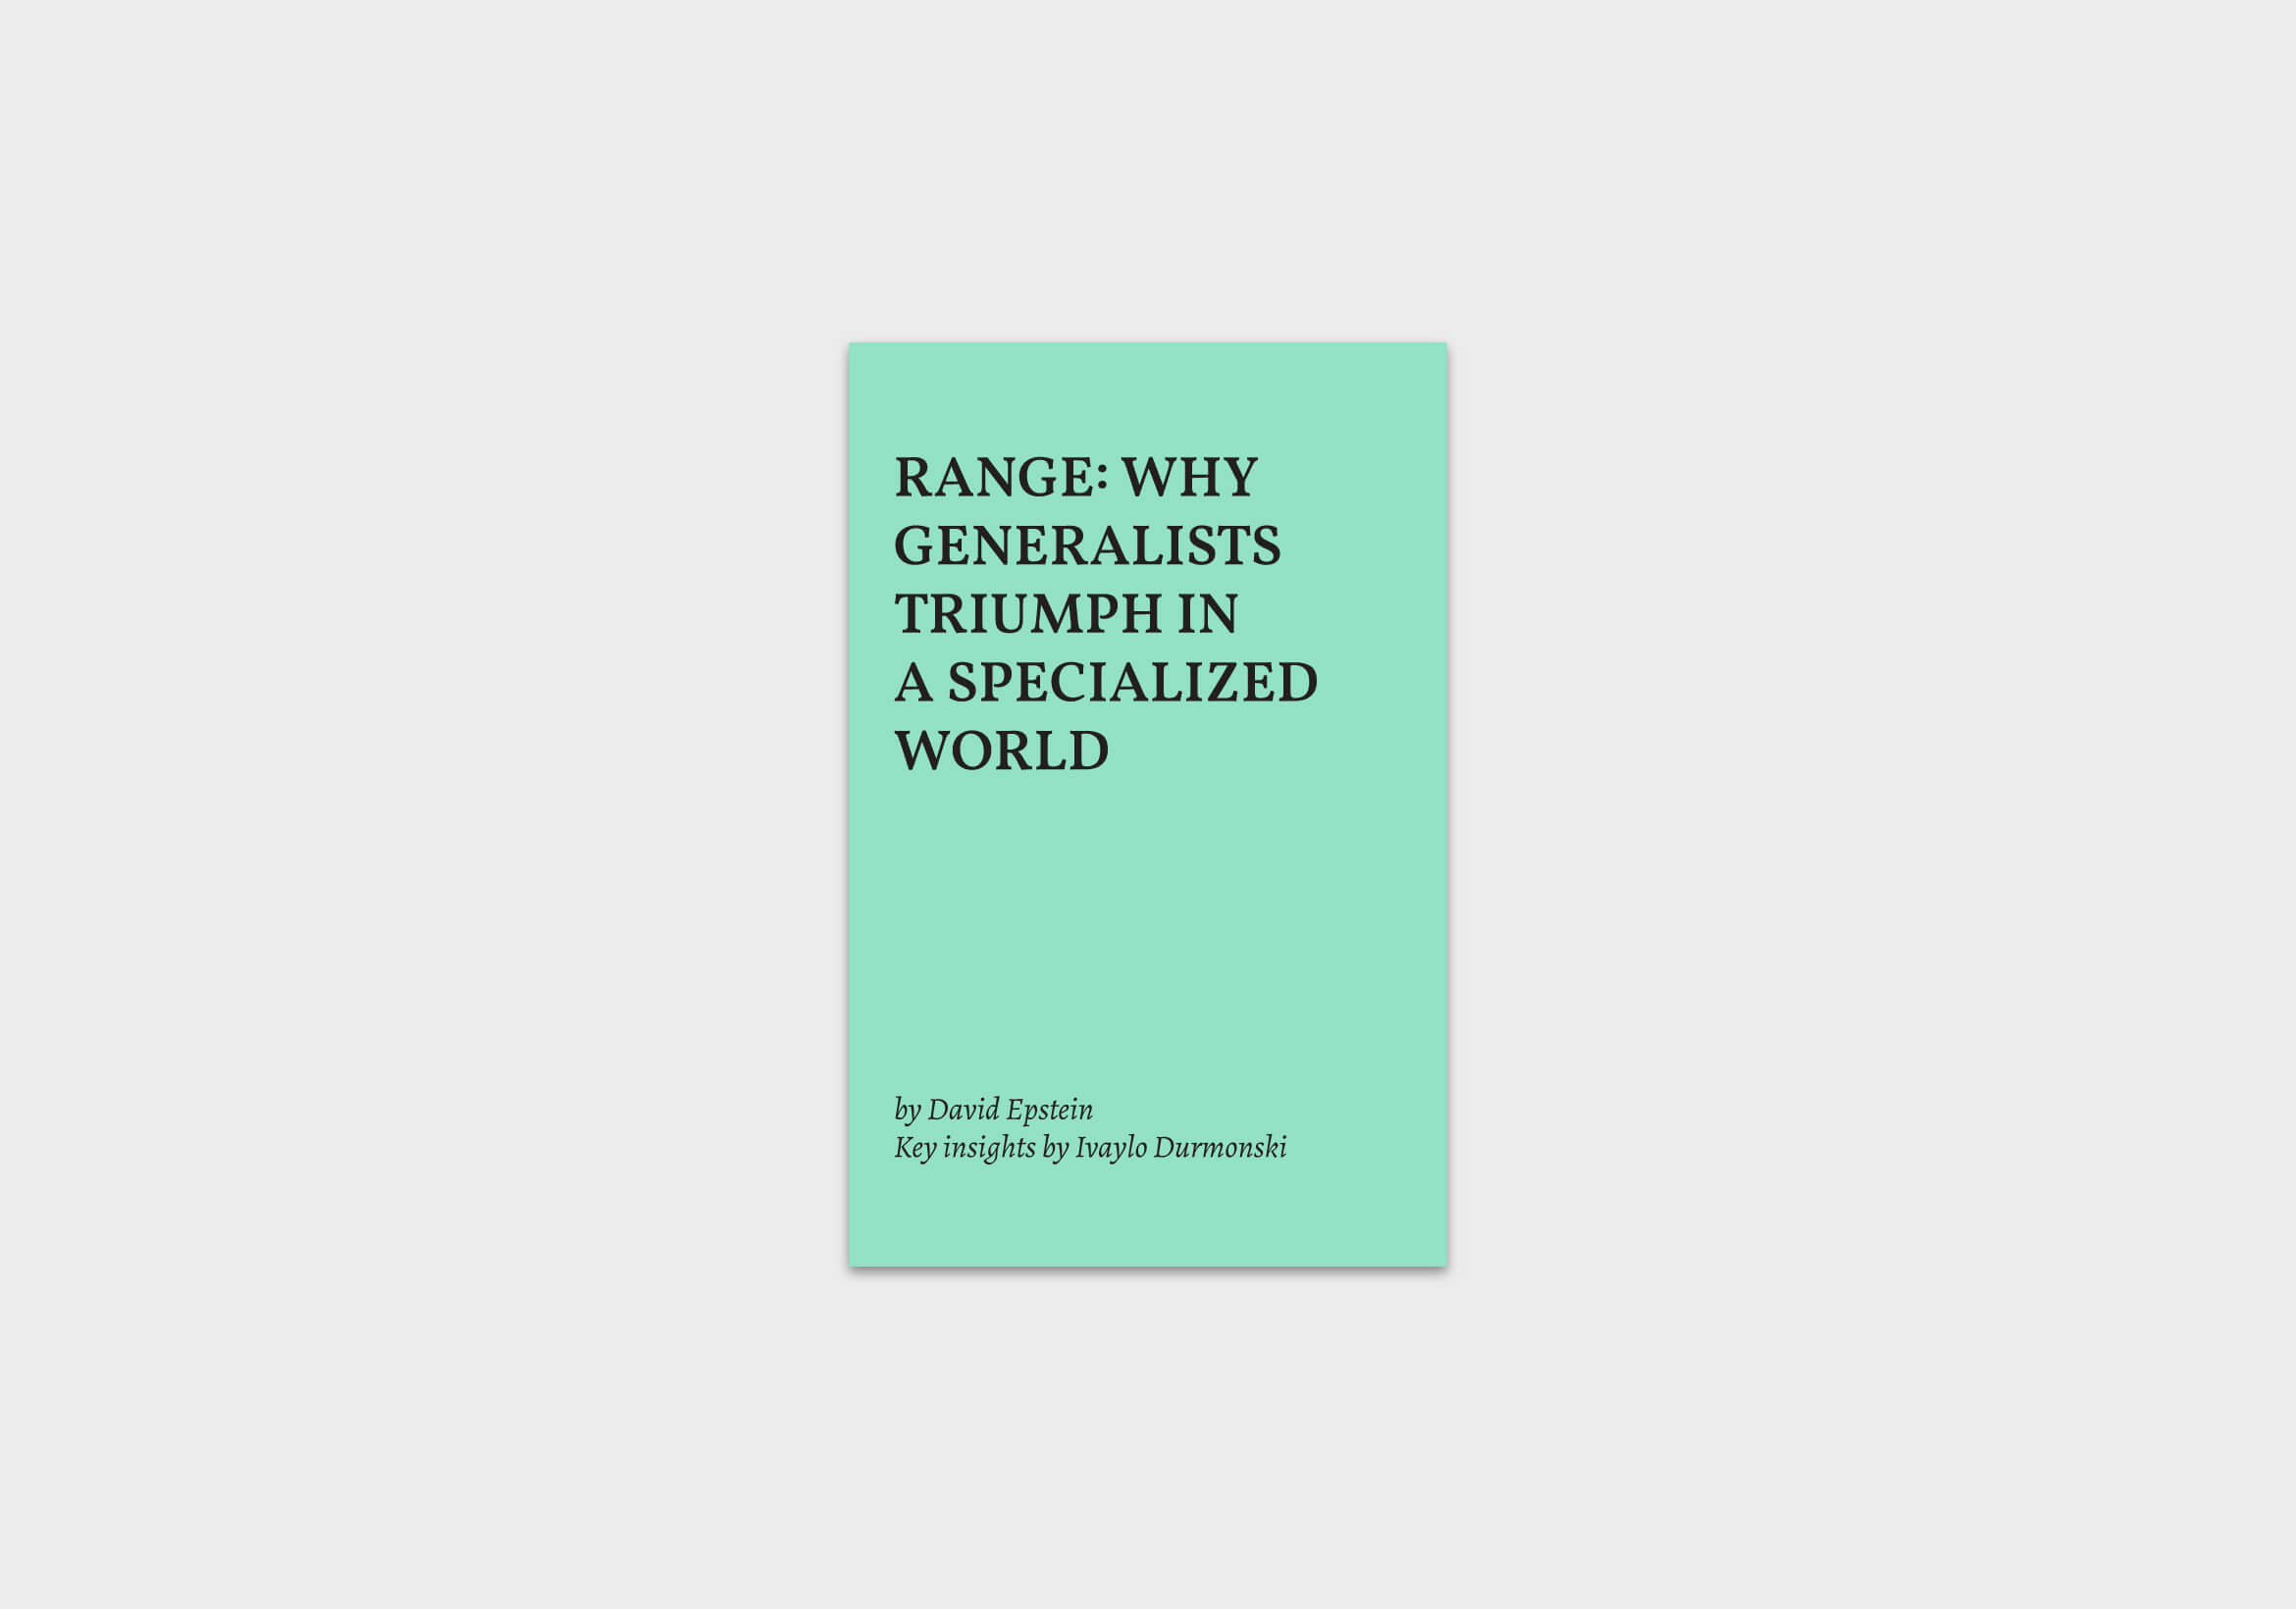 Range-Why-Generalists-Triumph-book-summary cover